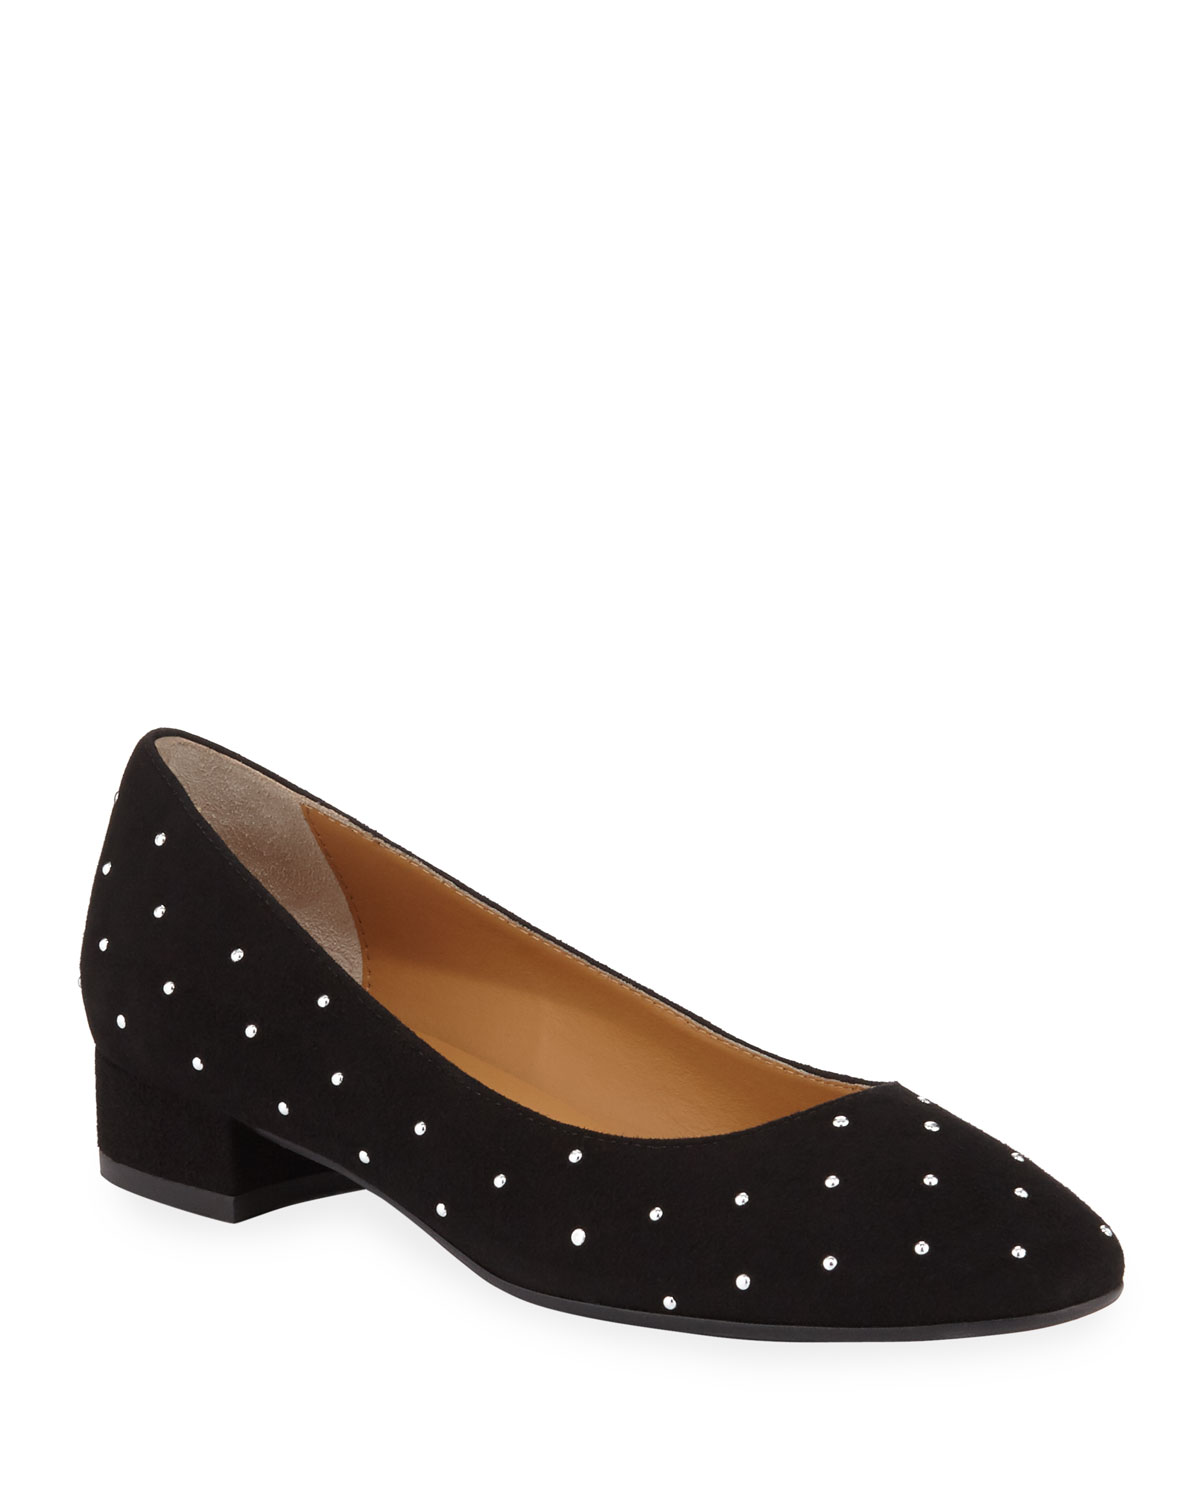 Sesto Meucci CHASYA STUDDED SUEDE LOW-HEEL PUMPS